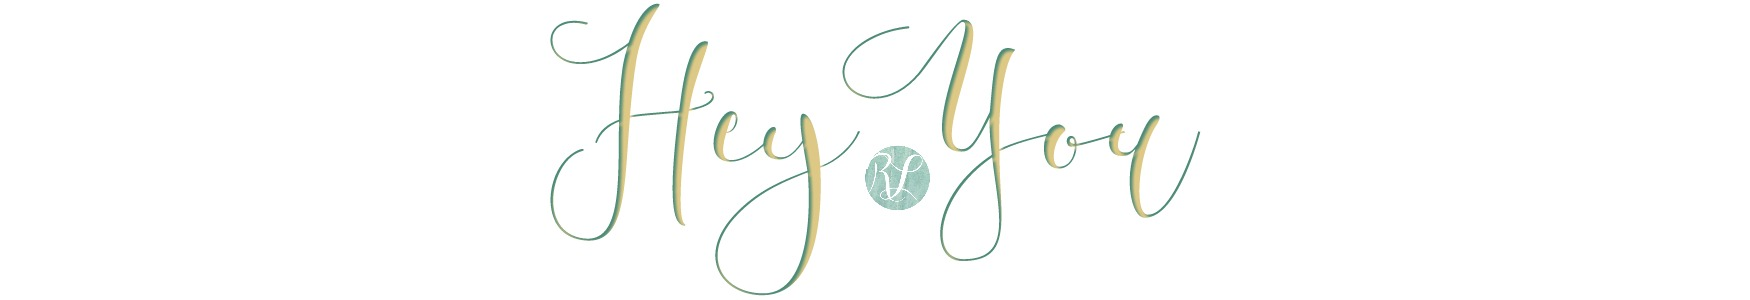 The words Hey You in the Rowan Lane Events Brand Colors and Font